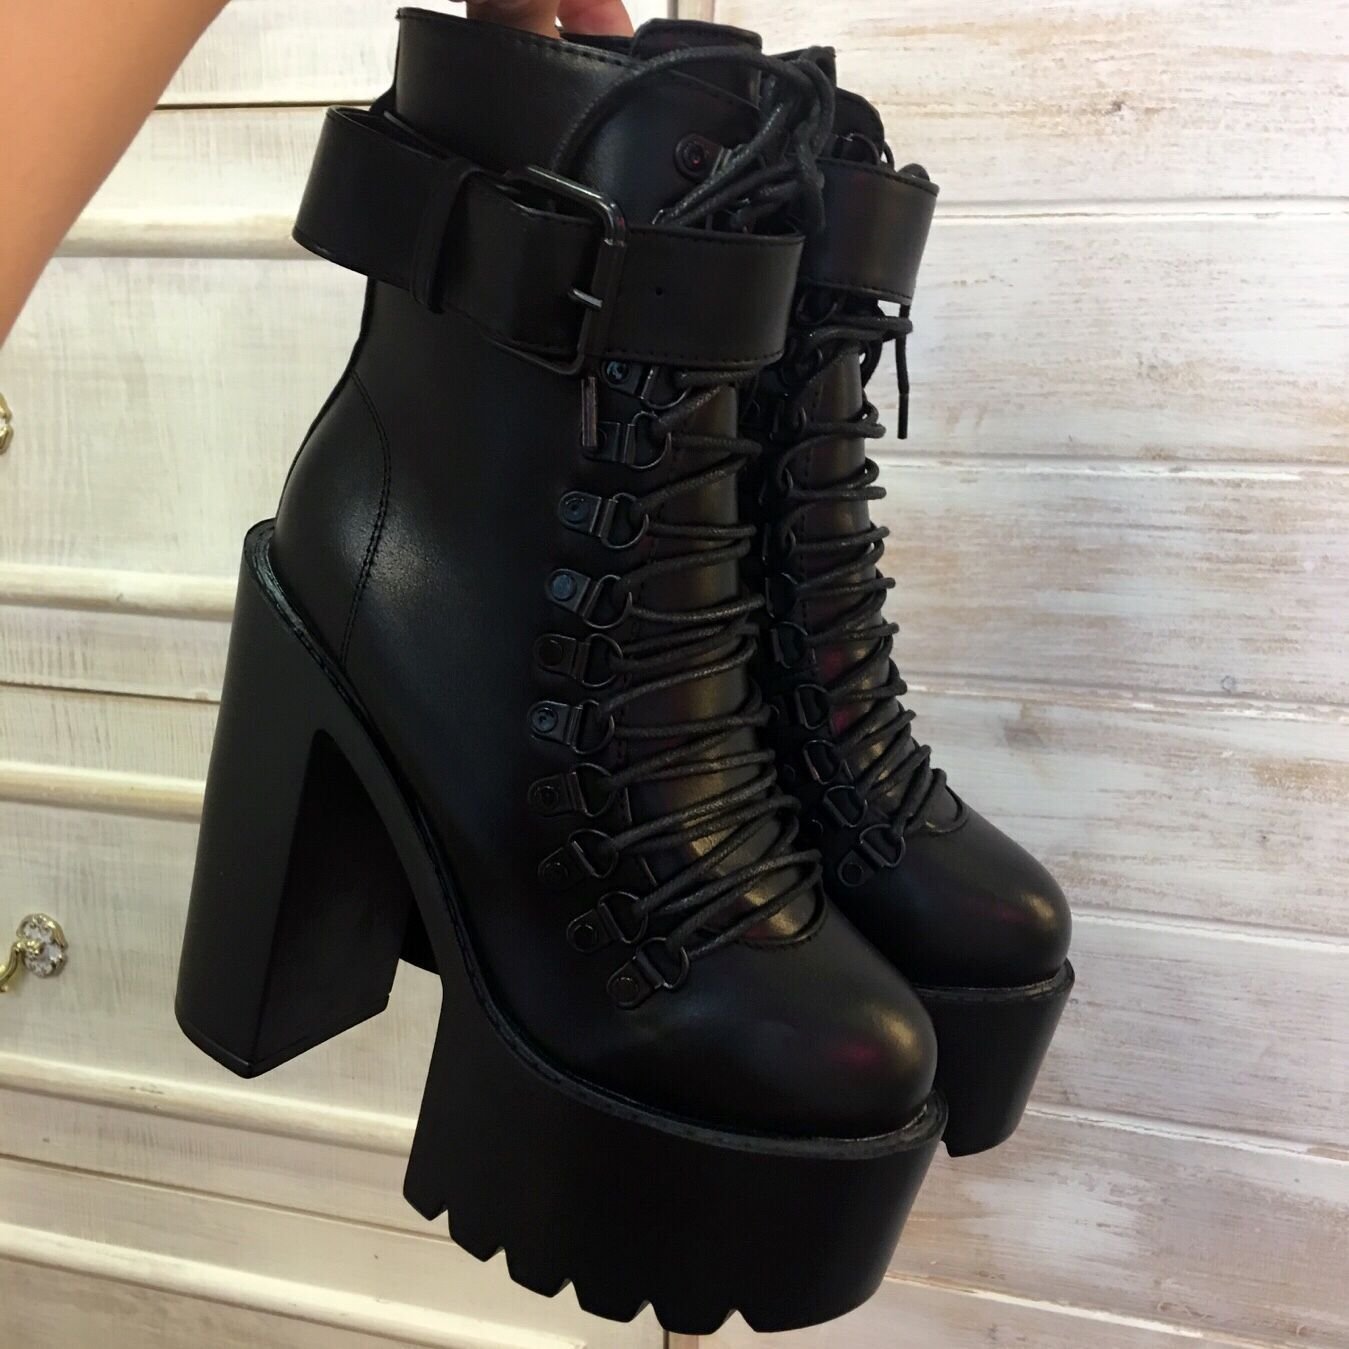 Black Square Heels Platform Boots Ankle Boots Female Lace Up Women Shoes  Fashion sold by Eoooh❣❣